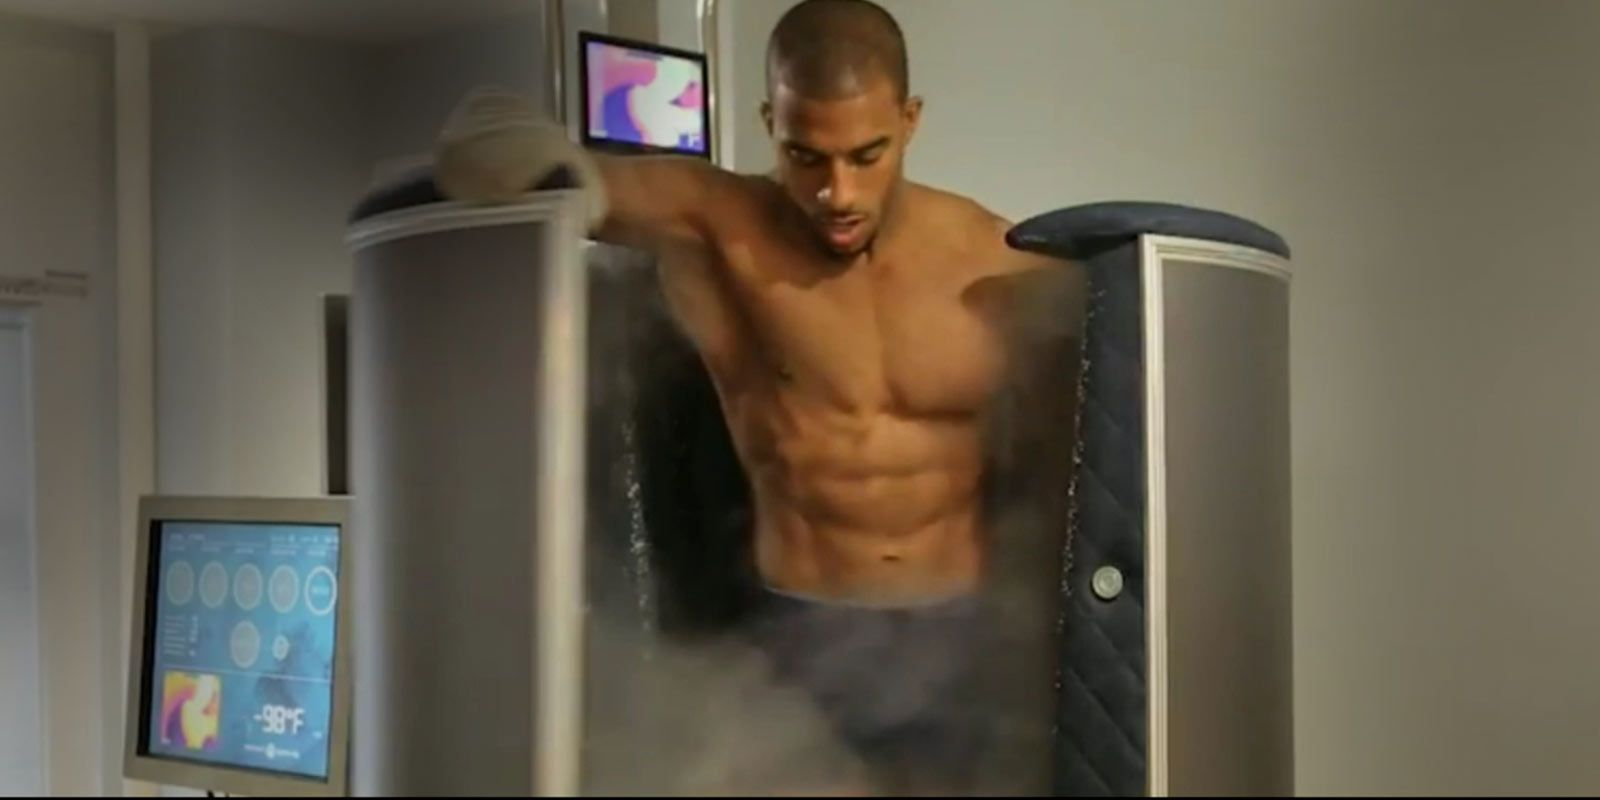 A cryosauna can also help individuals that play sports